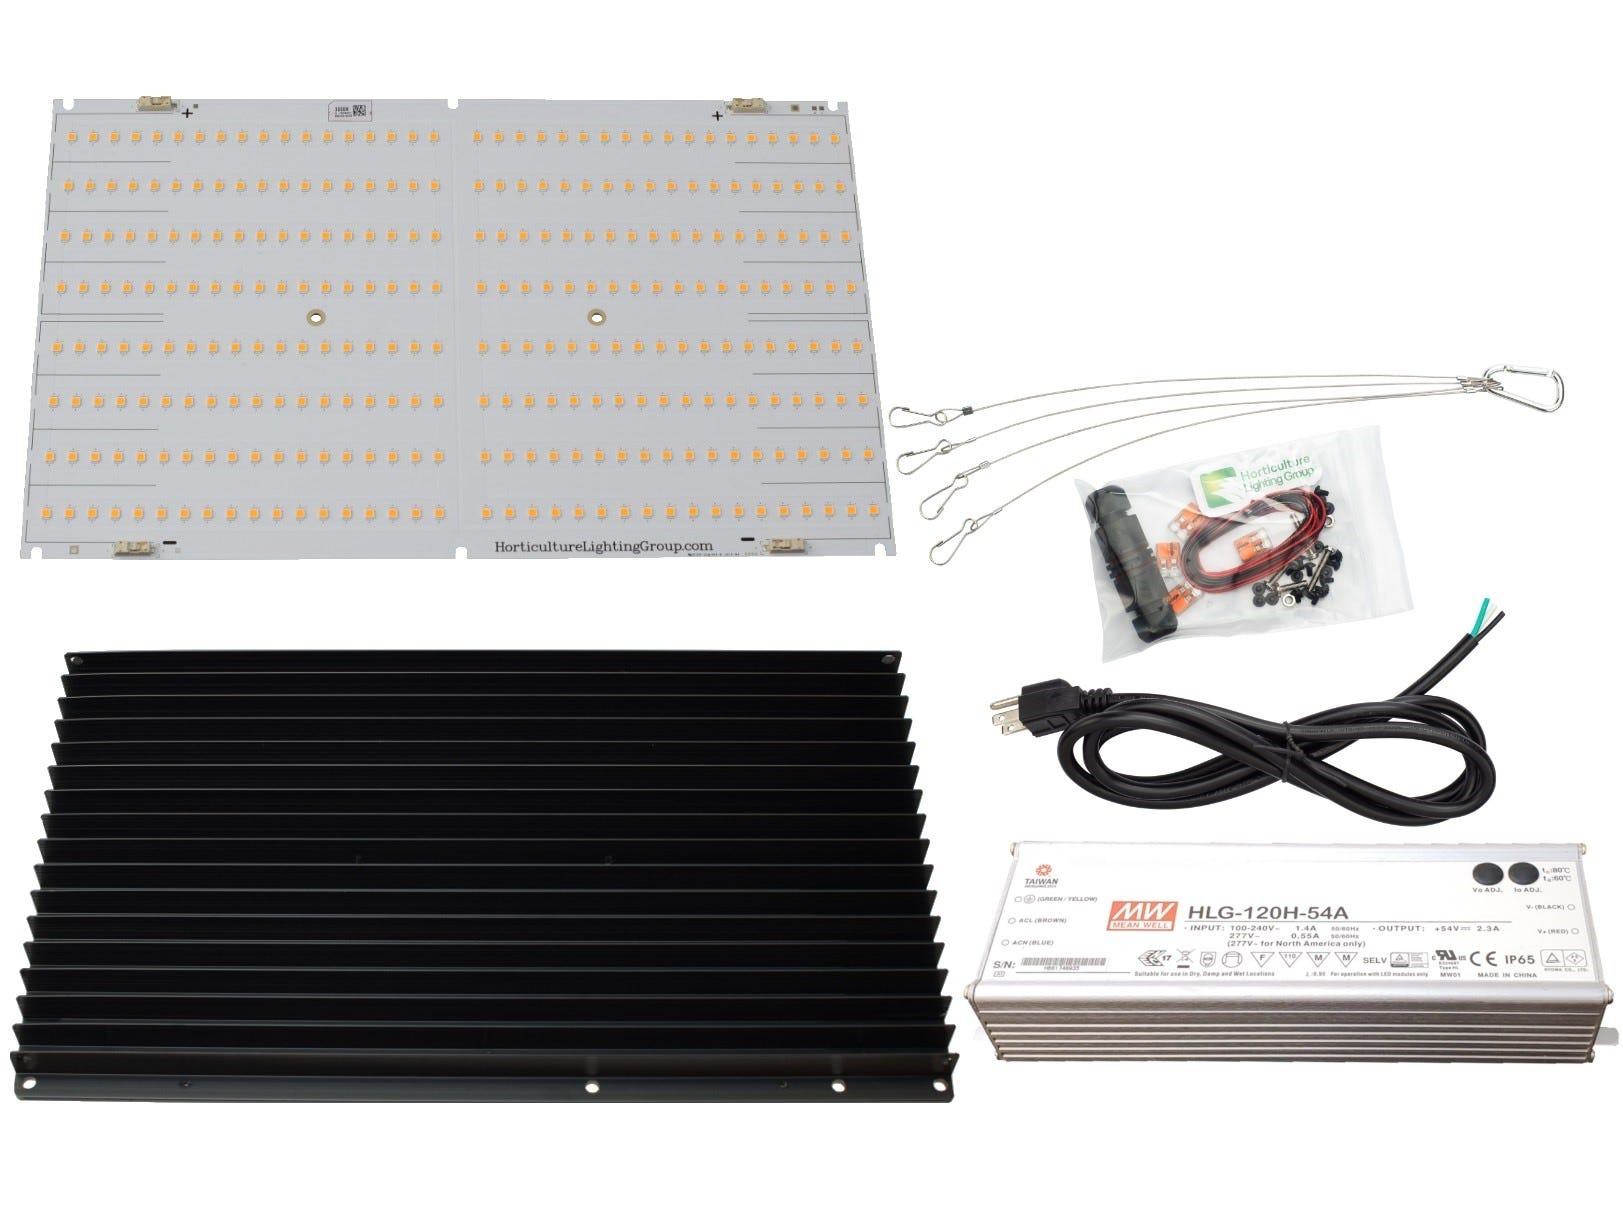 Horticulture Lighting Group HLG 135W QB V2 LED Kit *DISCONTINUED* READY TO ASSEMBLE 135W LED V2 BOARD KIT 135 Watt Lamp Kit. High-Efficiency QB288 V2 powered with Samsung top bin Diodes. Suited for main light and supplement lighting. Dimmable:60-150 Watts Veg Footprint:3x3 sqft Recommended Flower Footprint:2x2 sqft Max Flower Footprint:2x3 sqft INCLUDES QB288 Board. Made by Samsung with 301B LED 1x Slate 2 Predrilled 340mm Heatsink Meanwell HLG-120H-54A LED Driver. 93.5% Driver Efficiency 6FT NEMA 5-15P 16/3 SJTW NA Power Cord or equivalent for standard 120VAC with cable connector 2ft solid core Wire, 2x Wago Connectors for DC wiring Hanger Clips Lamp Efficacy with QB 288 V2 2.41 µmol/J , 166Lm/W Board Level Efficacy with QB 288 V2 2.58 µmol/J , 177.5Lm/W LED Gardener Review & Assembly No Thermal Interface Material is required between the LED board and the heatsink Remove black plug on driver and use Philips head screwdriver for dimming NOTE: Boards should be wired in series with the driver for maximum output